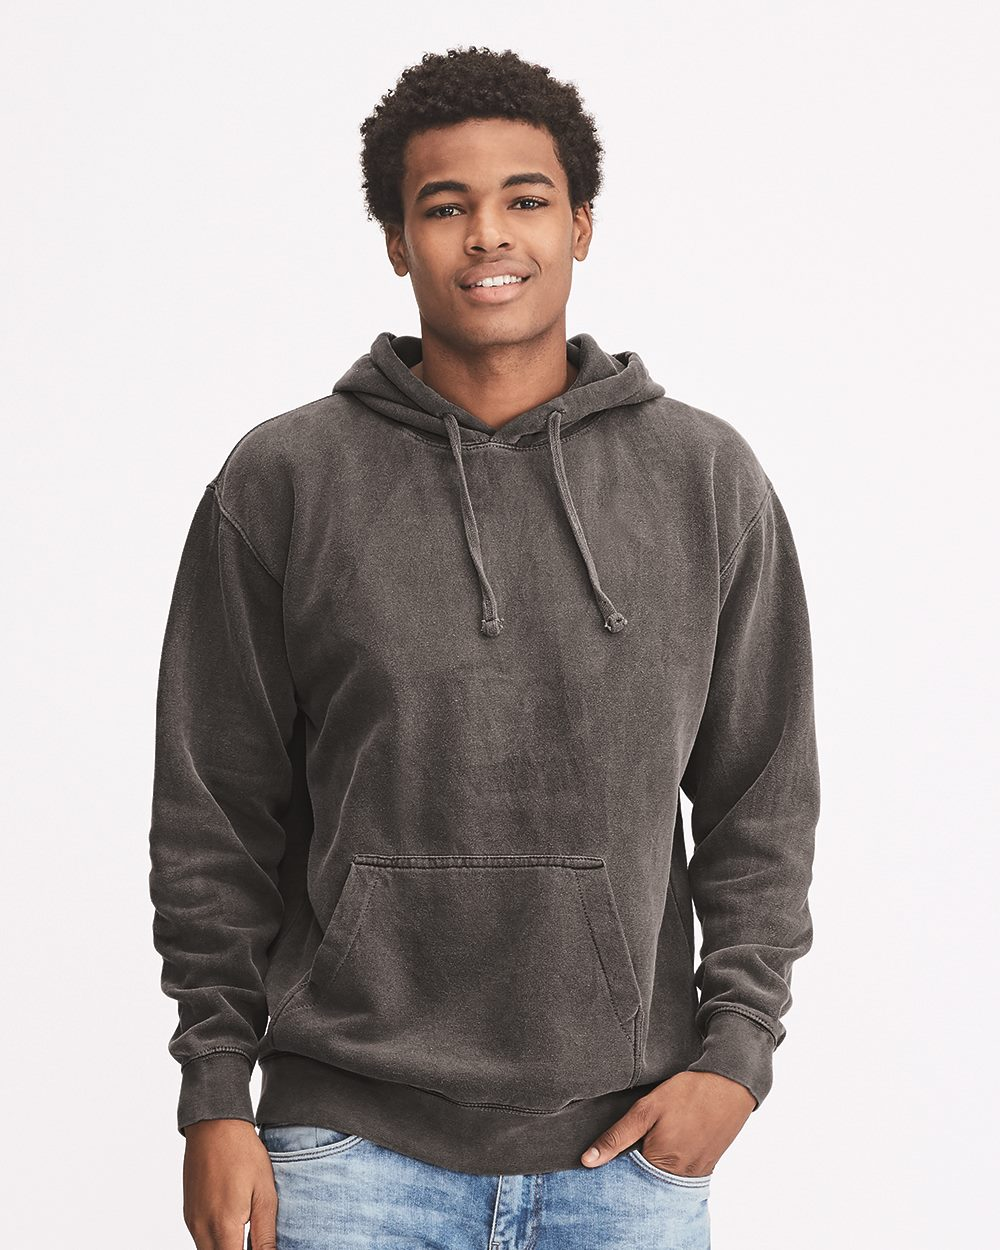 Comfort Colors 1567 - Garment Dyed Hooded Pullover Sweatshirt